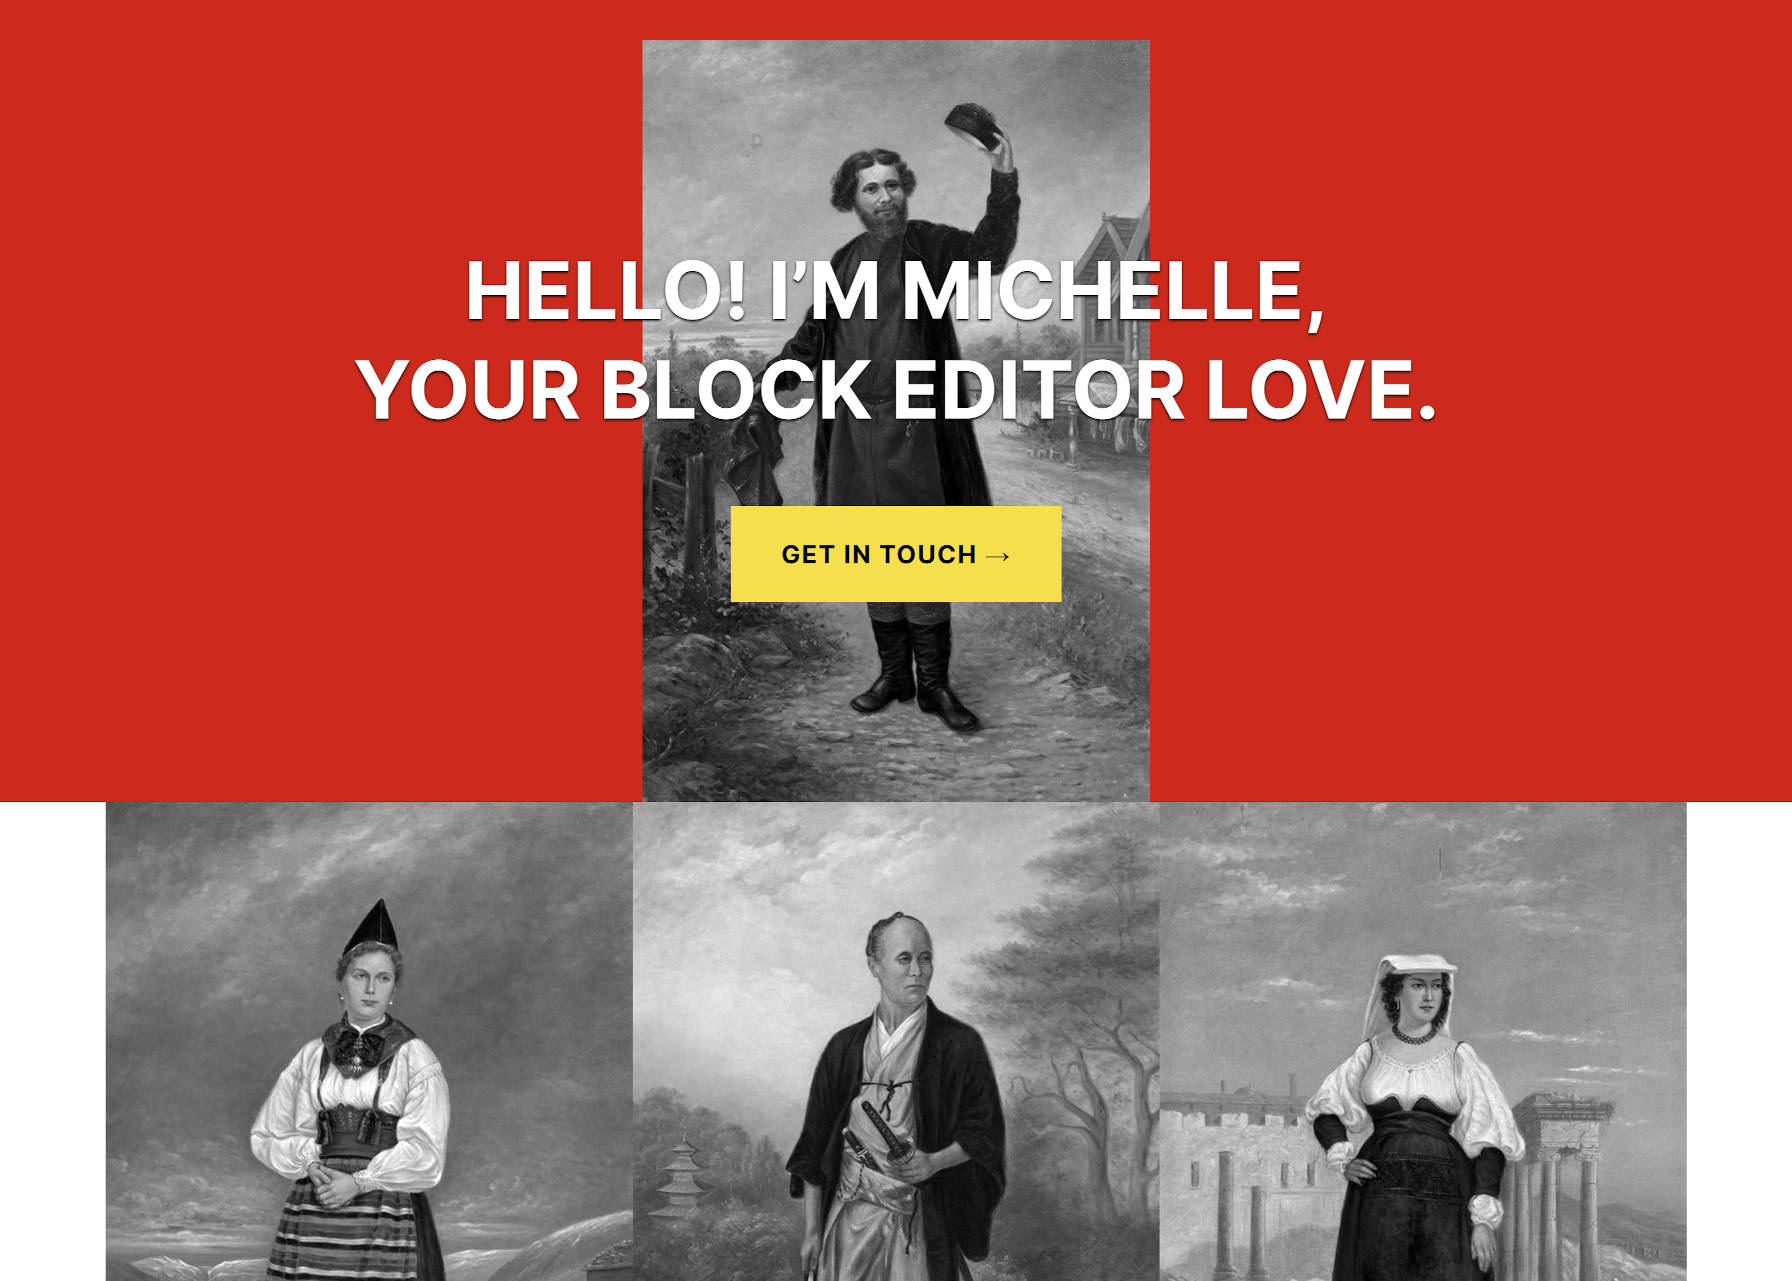 the-michelle-wordpress-theme-launches-with-dozens-of-block-patterns-and-styles-4 The Michelle WordPress Theme Launches With Dozens of Block Patterns and Styles